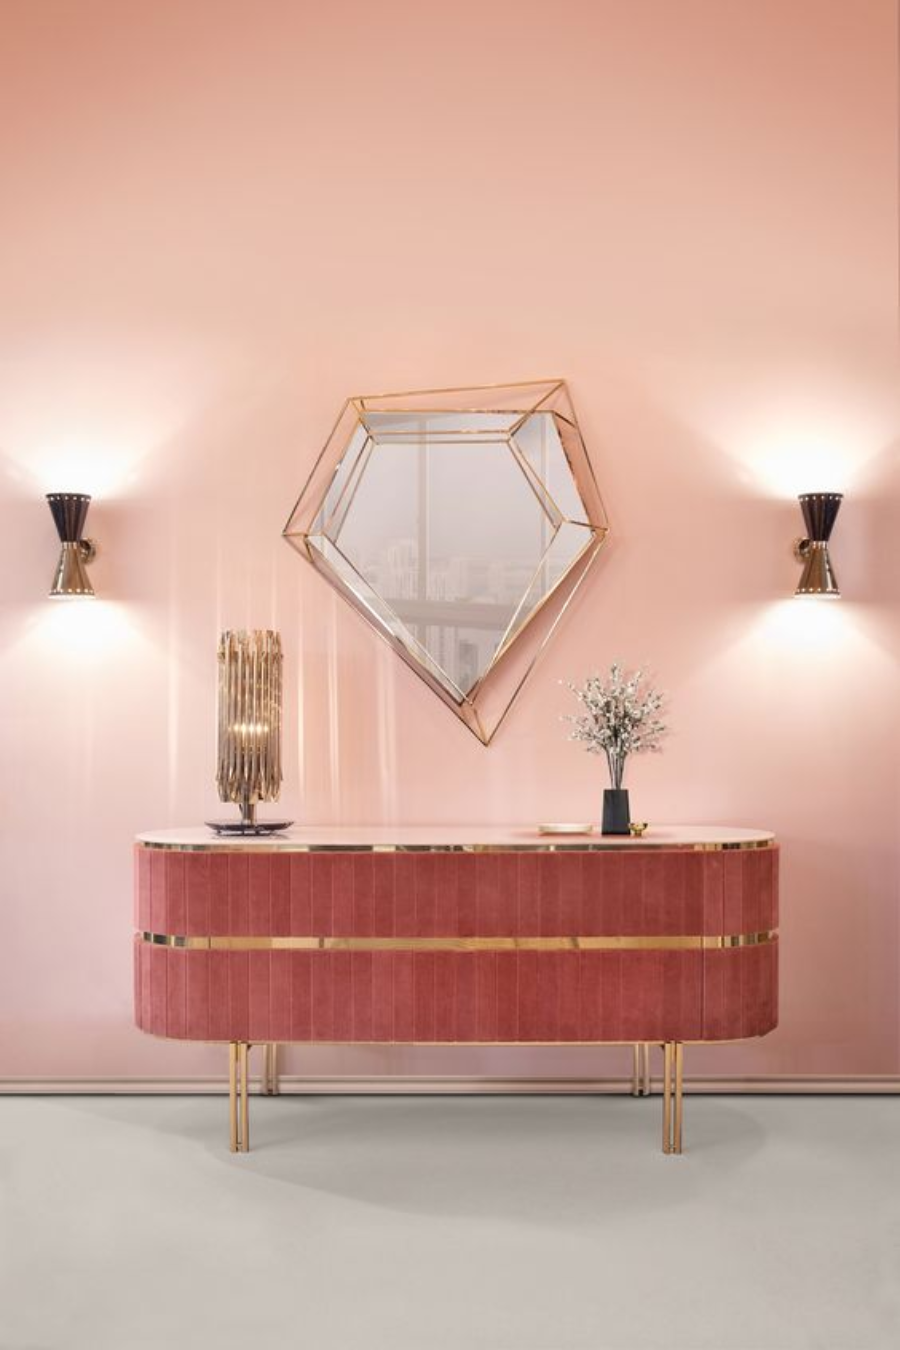 exclusive sideboards 10 Exclusive Sideboards That You Need On Your Next Interior Design Project canva photo editor 56